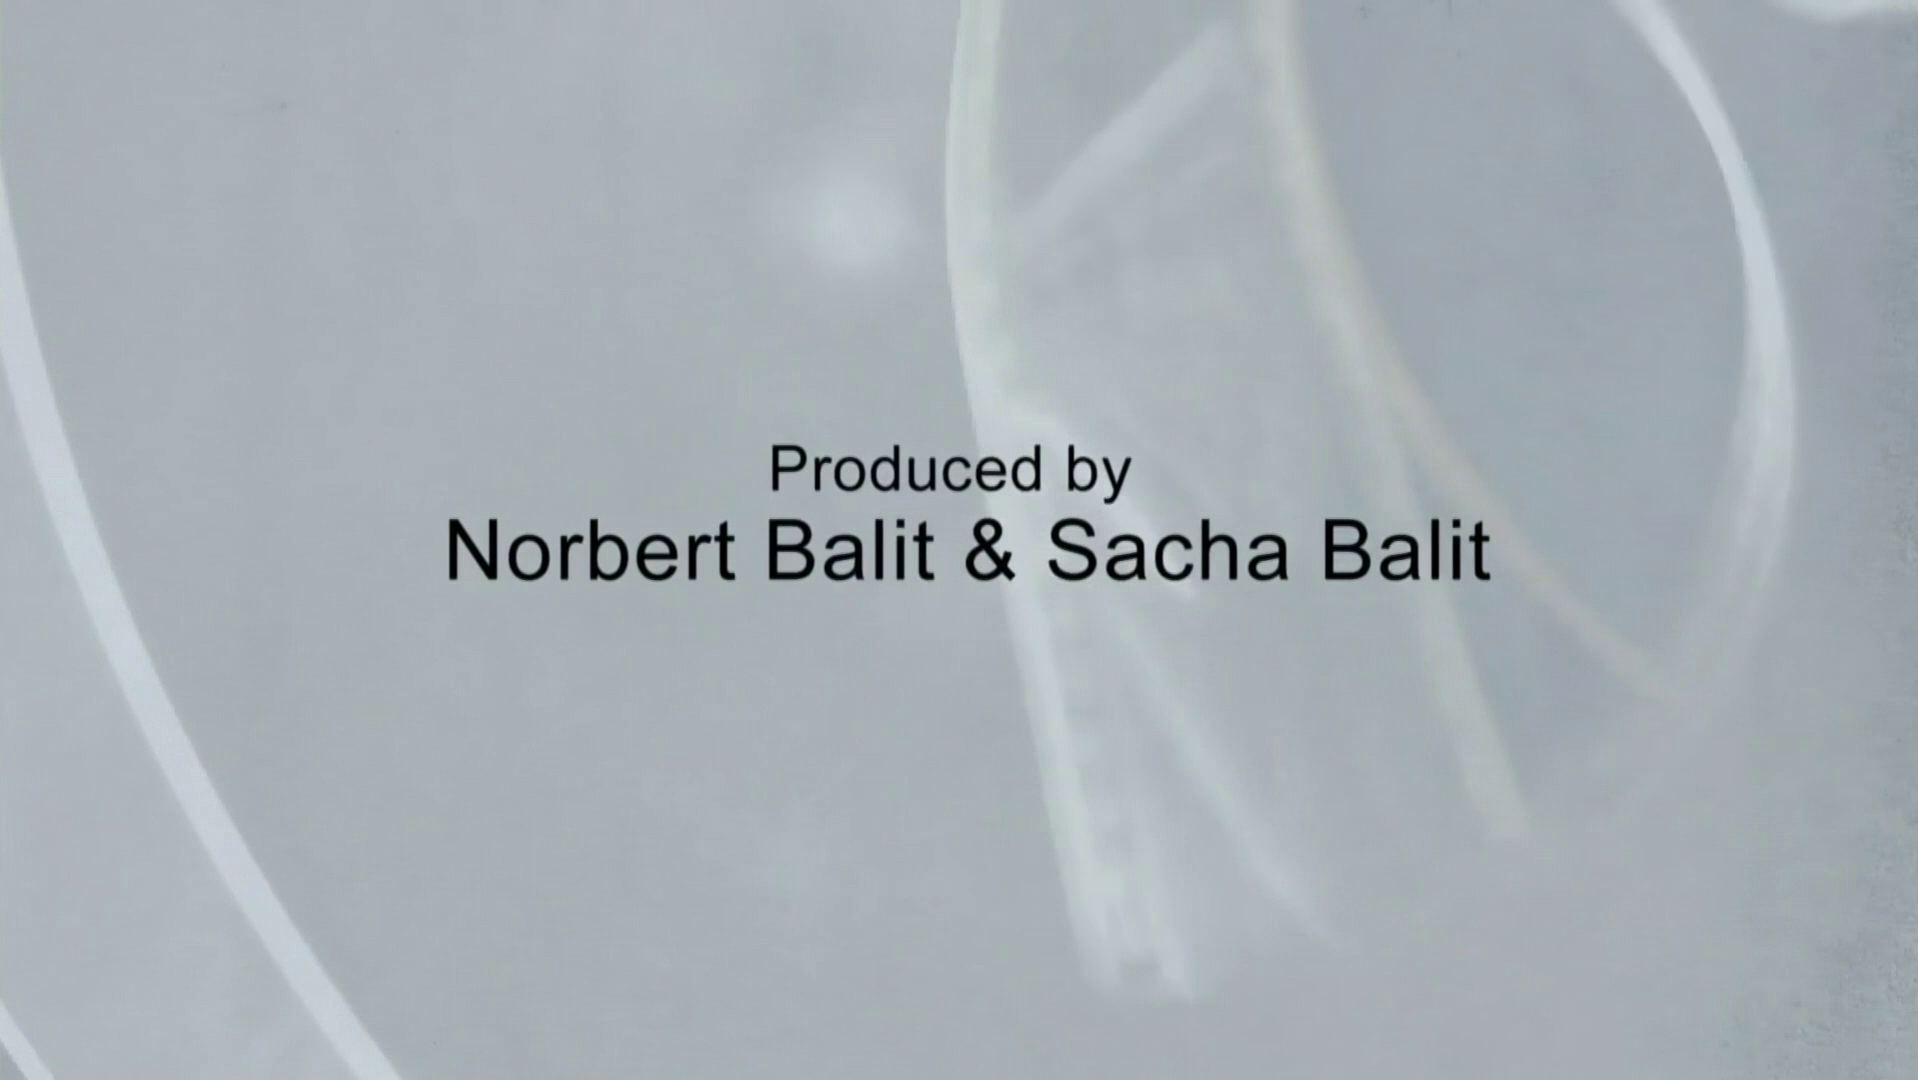 Main title from the 2000 'Elizabeth Taylor and Richard Burton' episode of Hollywood Couples (4). Produced by Norbert Balit and Sacha Balit